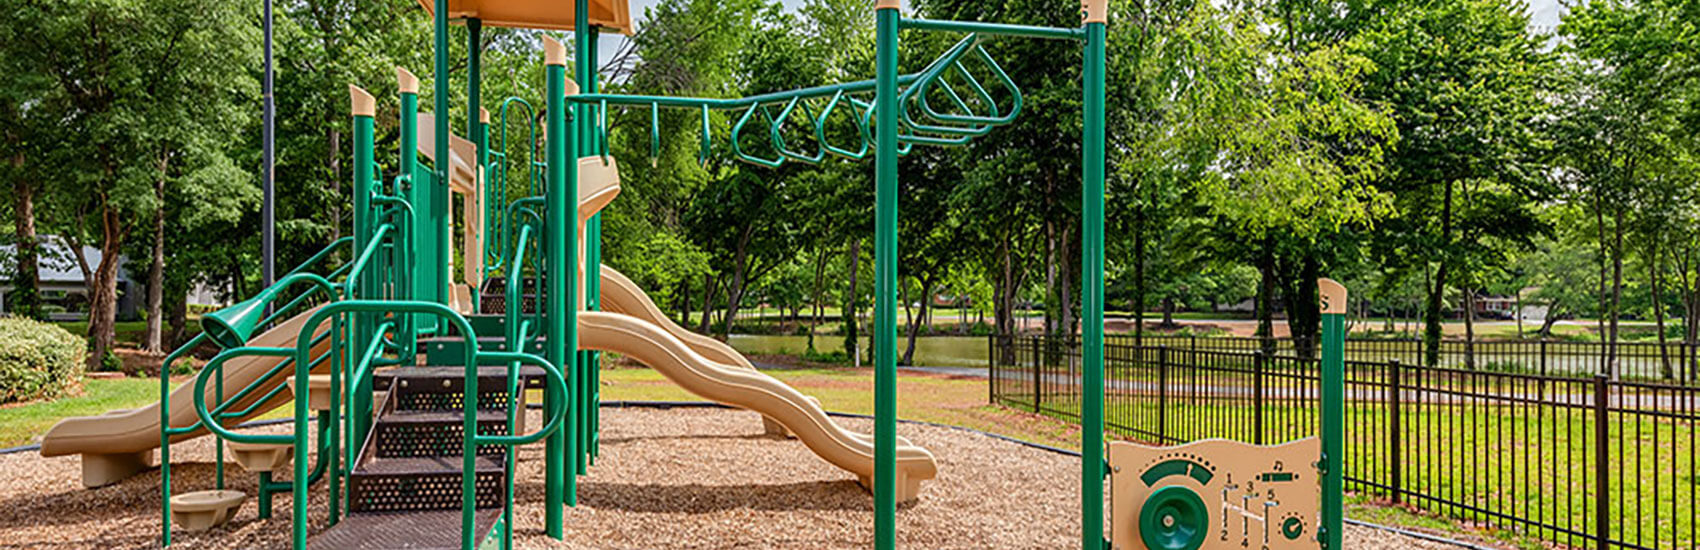 Green Rock Playground